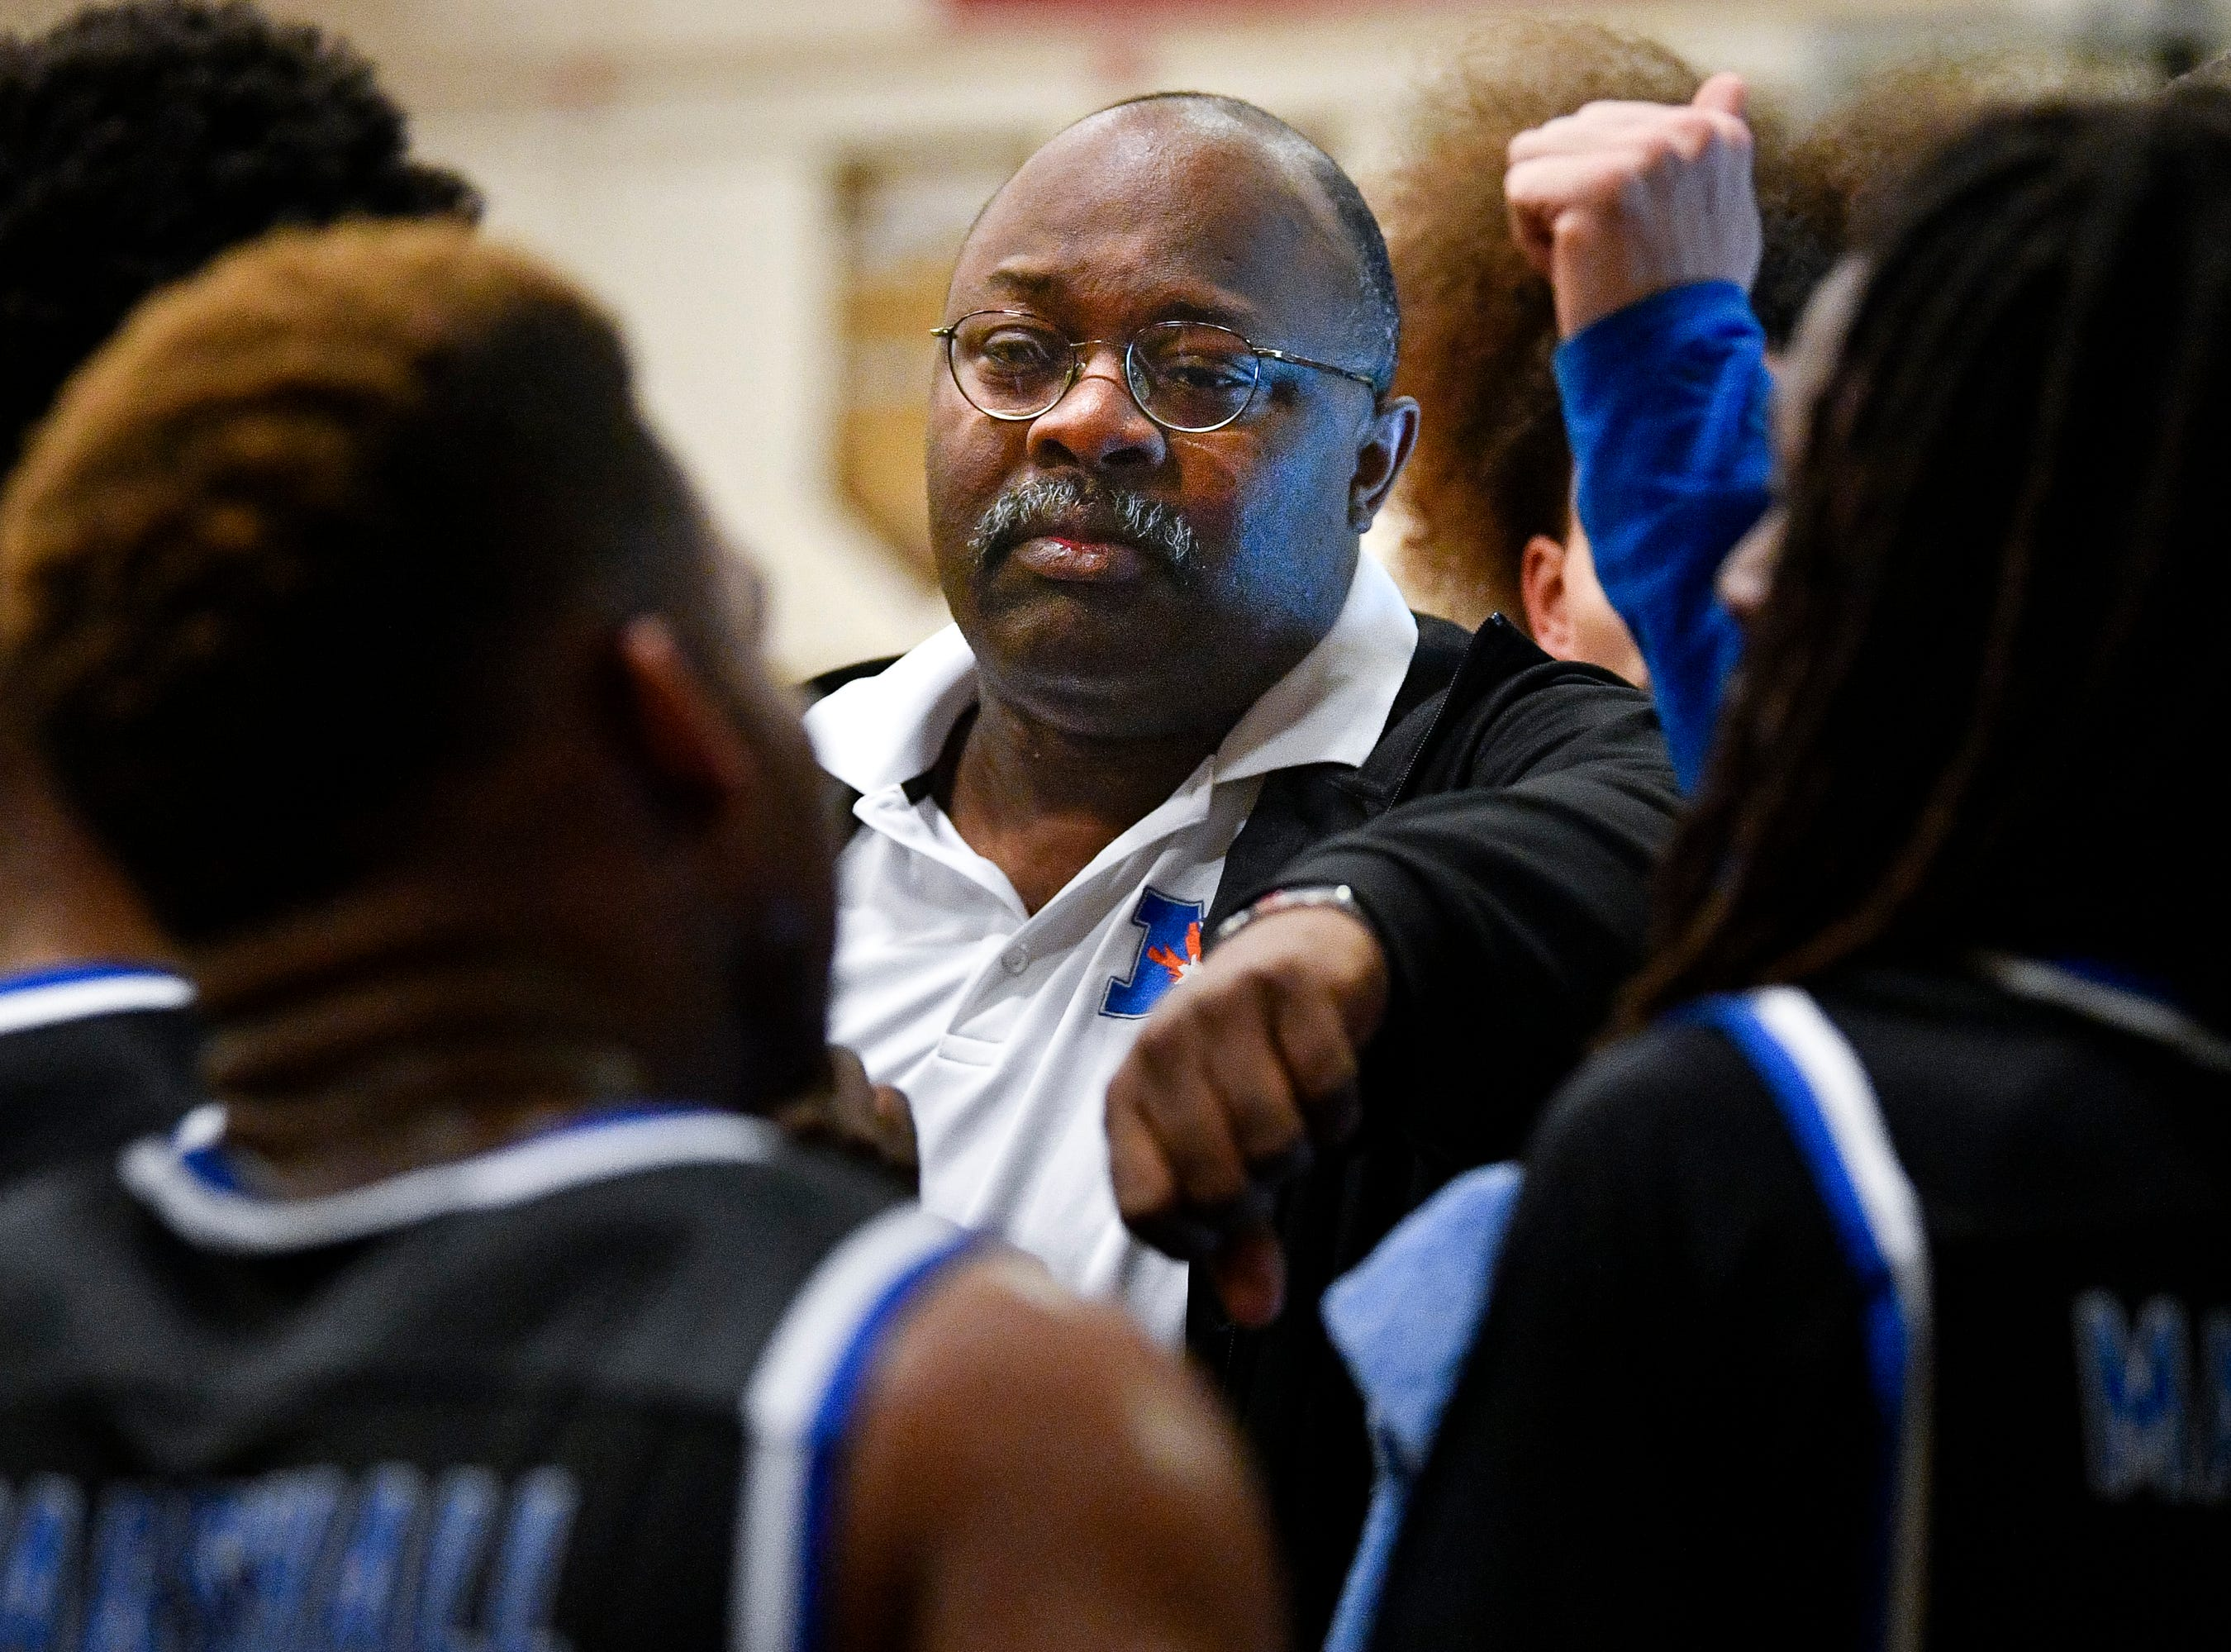 Marshall County head coach Lavon King works with his team against Central Magnet during the second half at Central Magnet School in Murfreesboro, Tenn., Friday, Jan. 11, 2019.